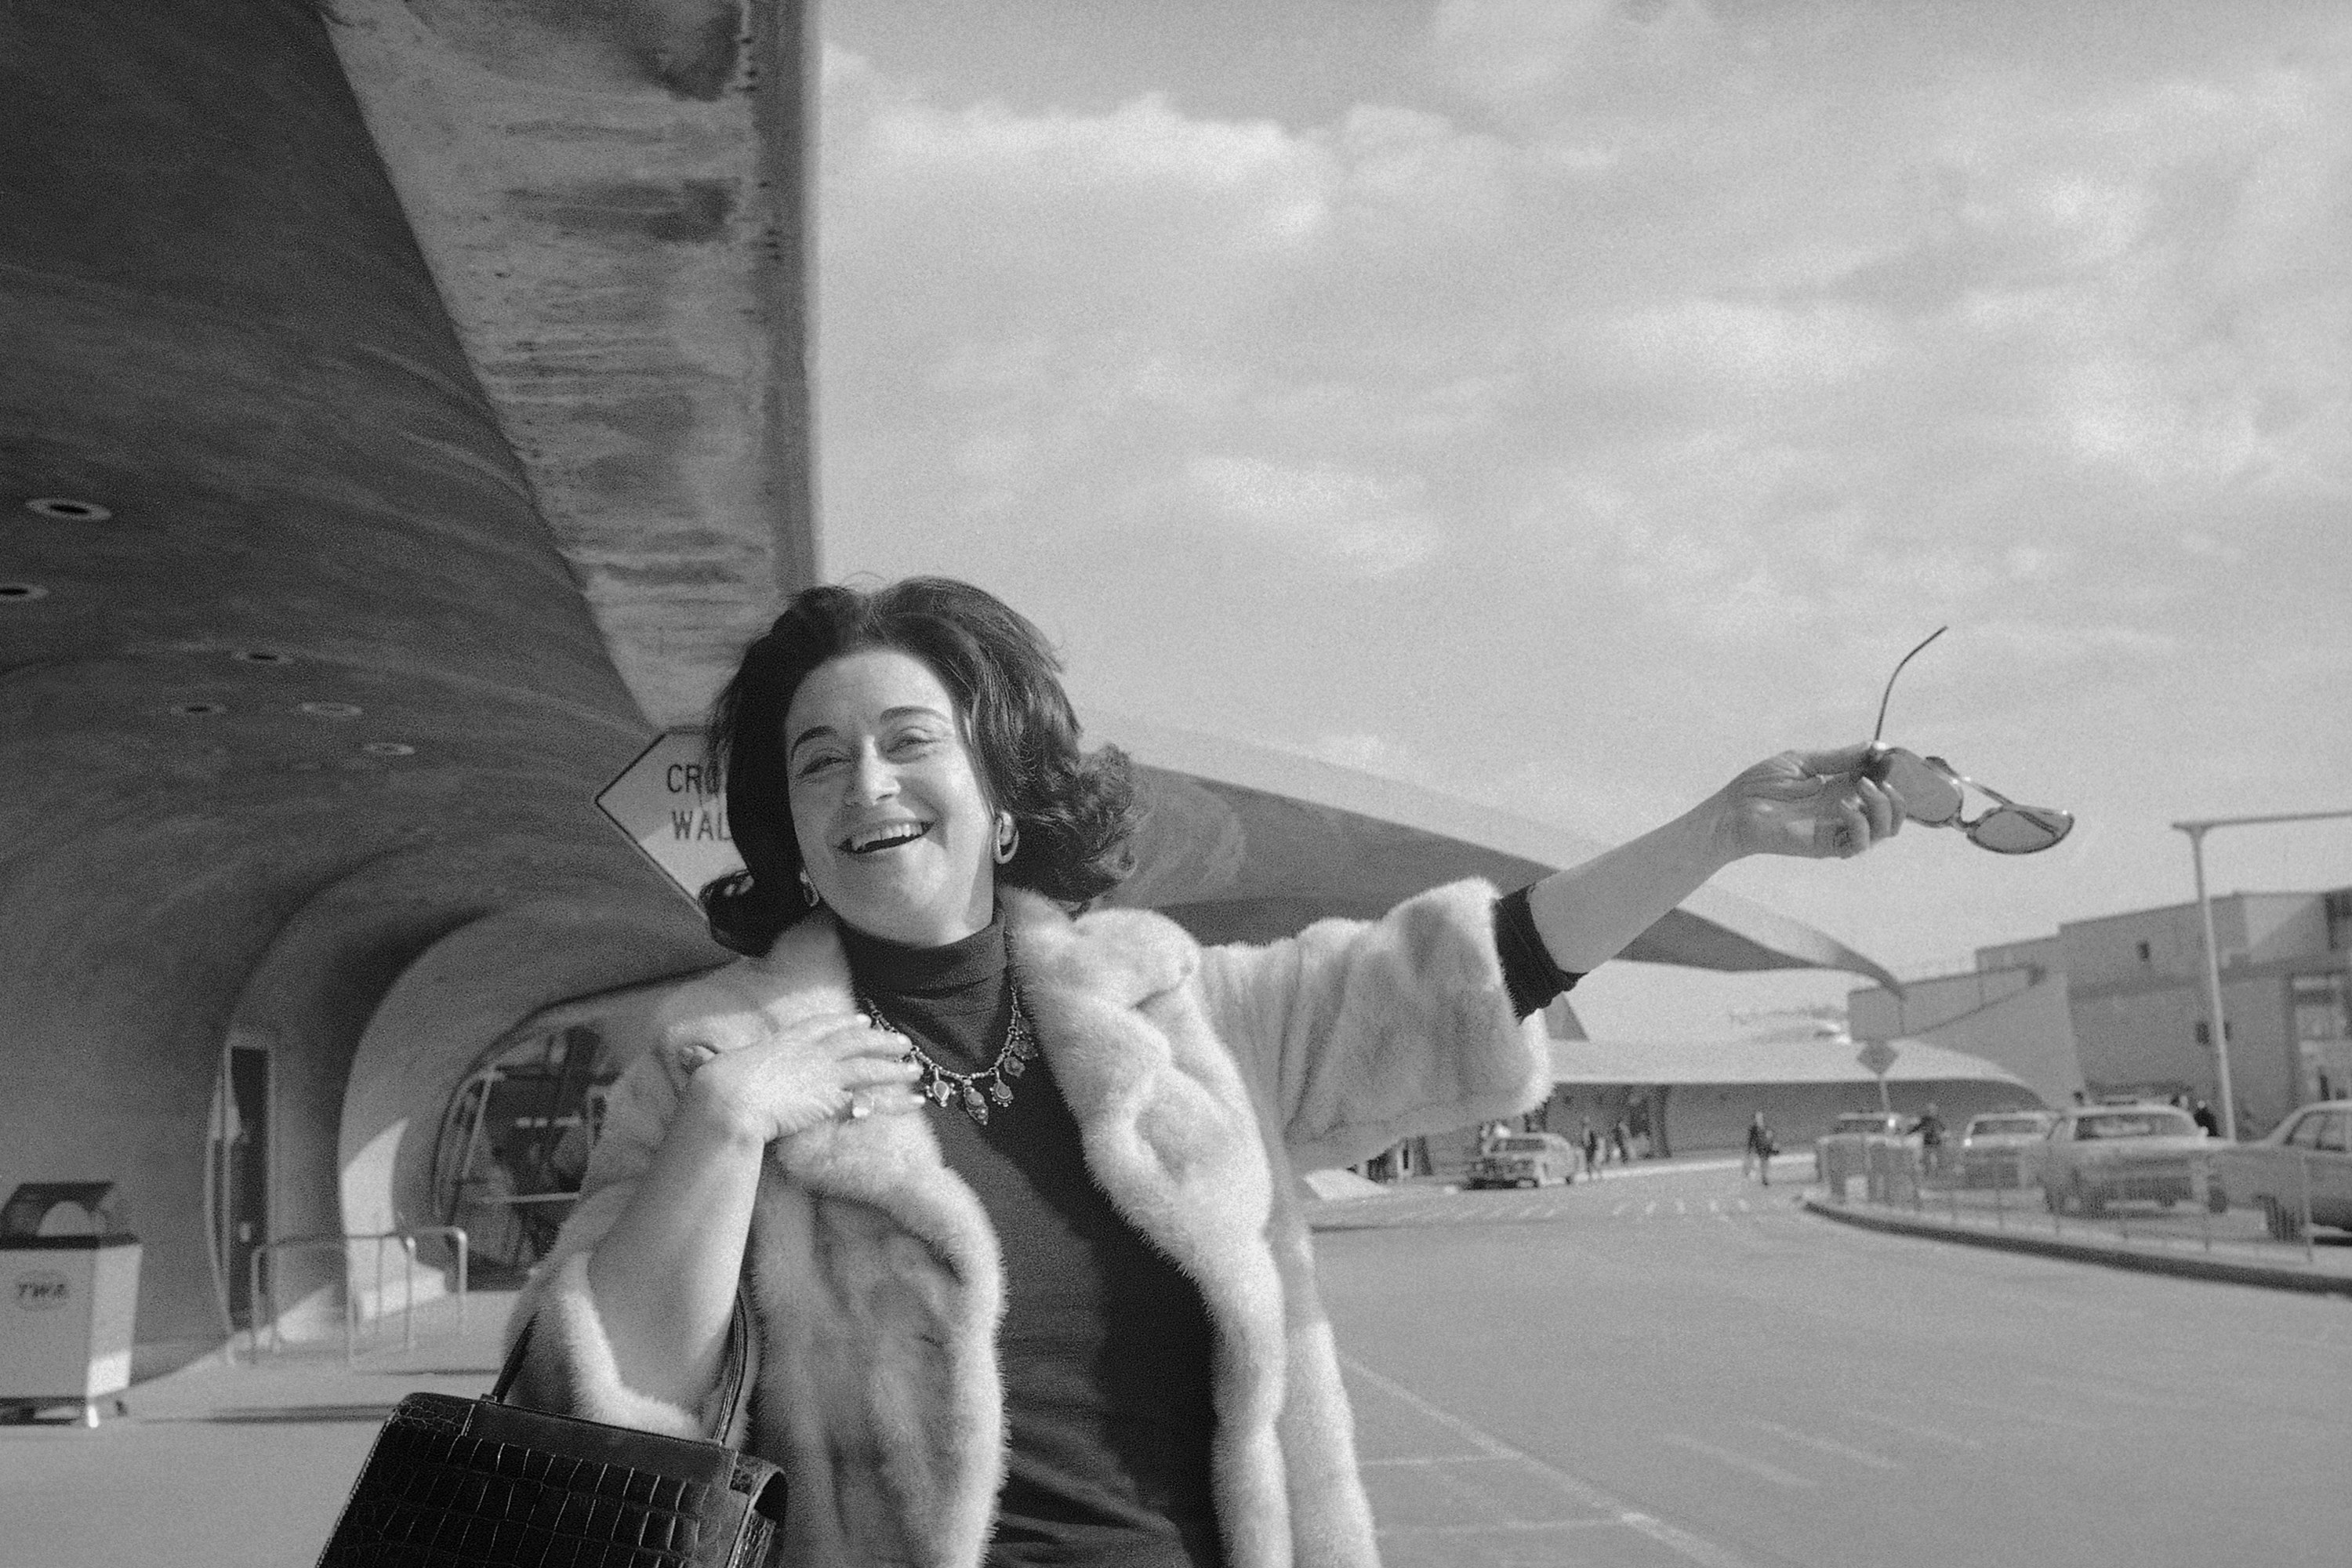 A woman in a fur coat waves to the camera, one arm holding a purse and the other hand a pair of sunglasses, outside an airport